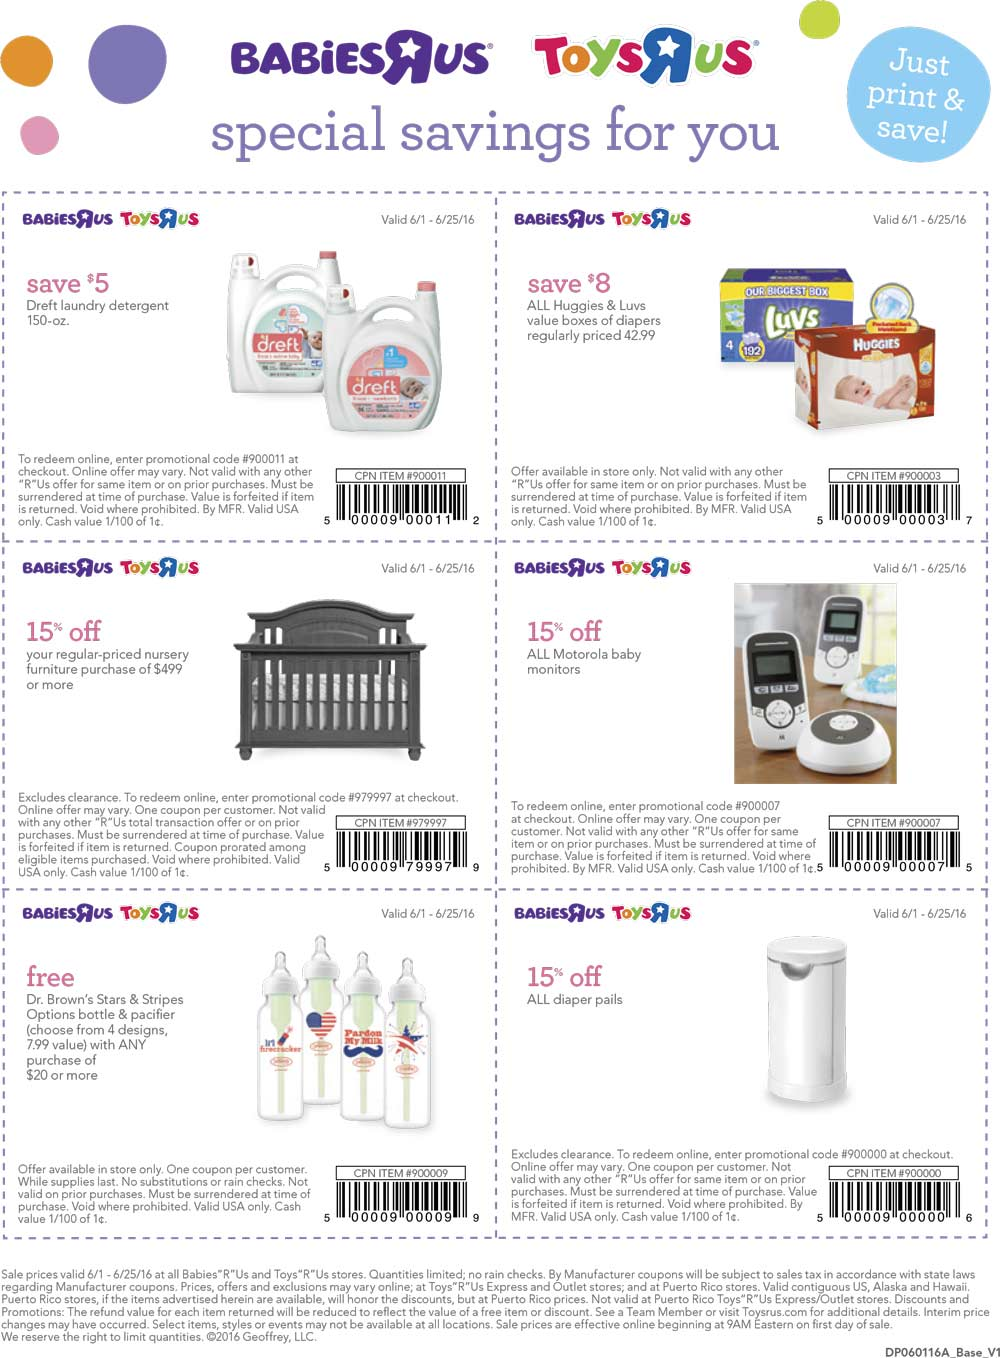 Babies R Us Coupon June 2018 $8 off diapers, free bottle & more at Babies R Us & Toys R Us